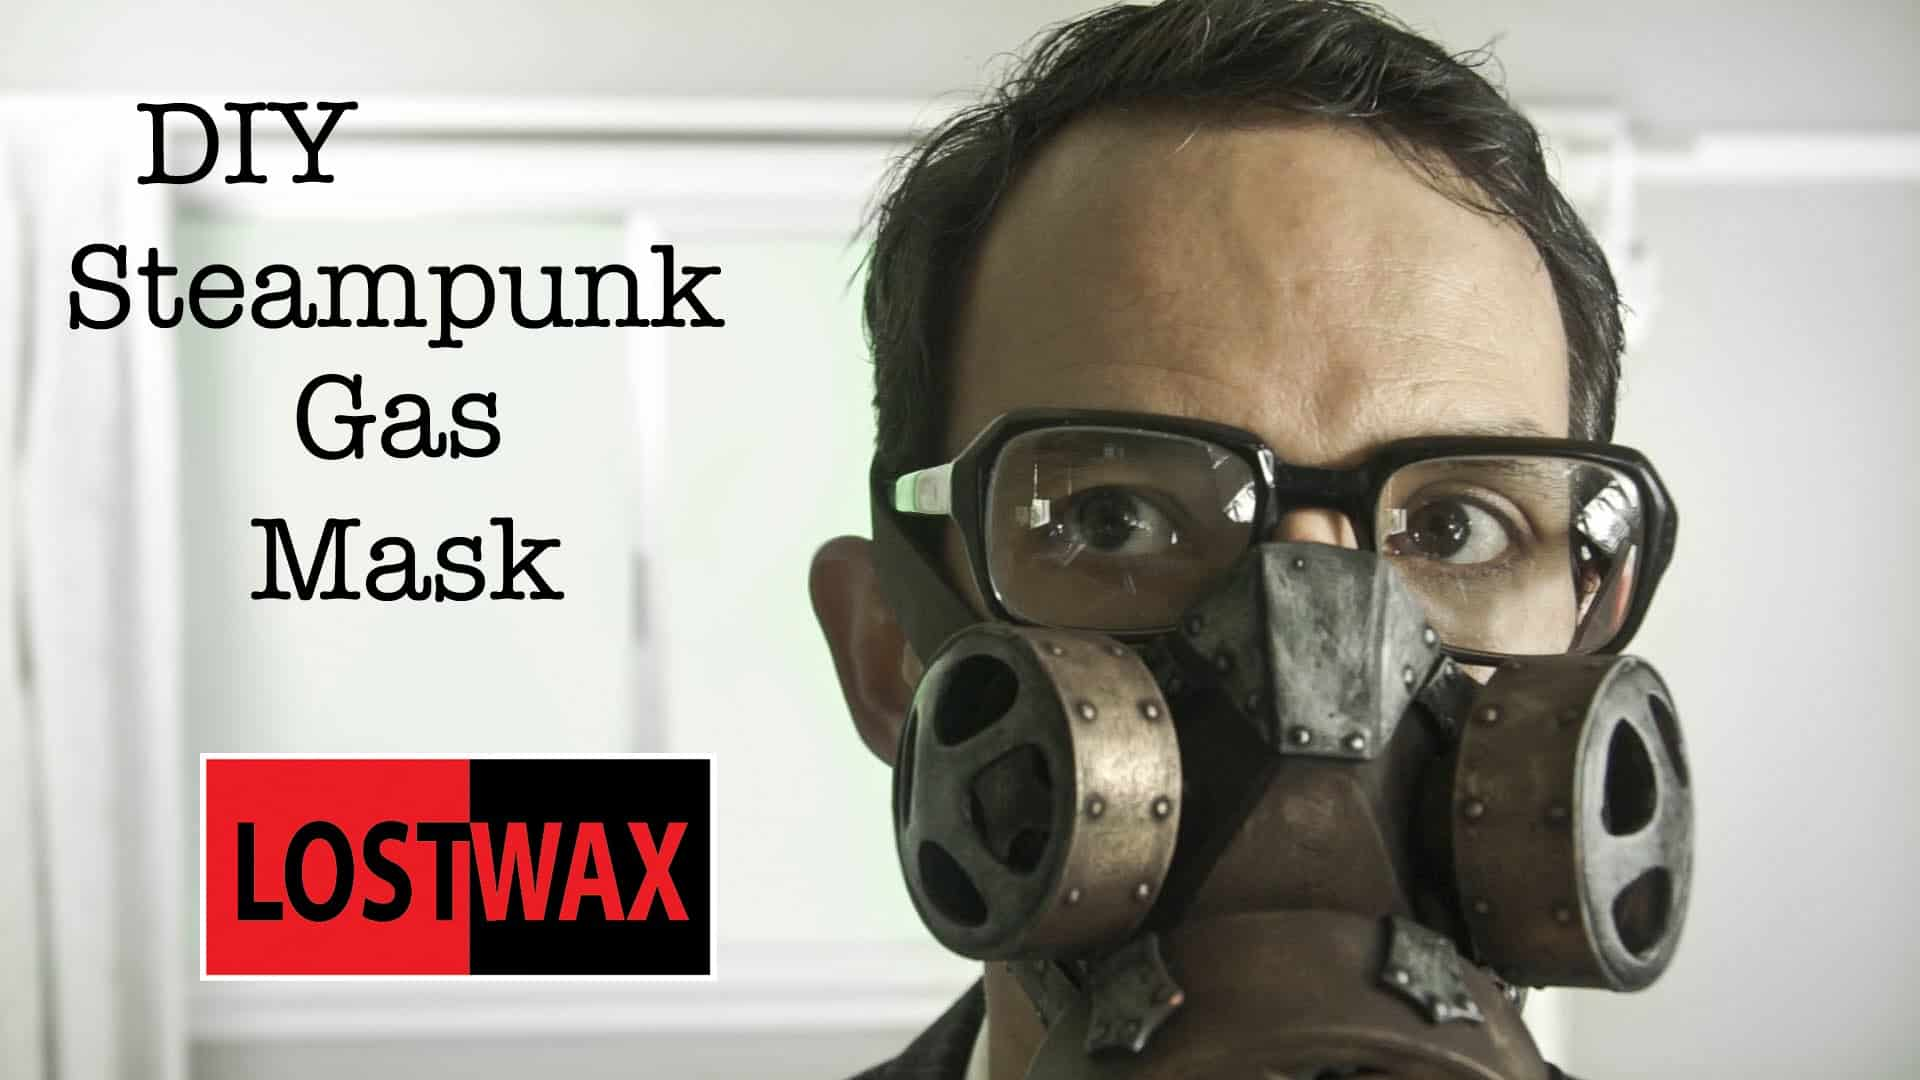 Diy steam punk gas mask